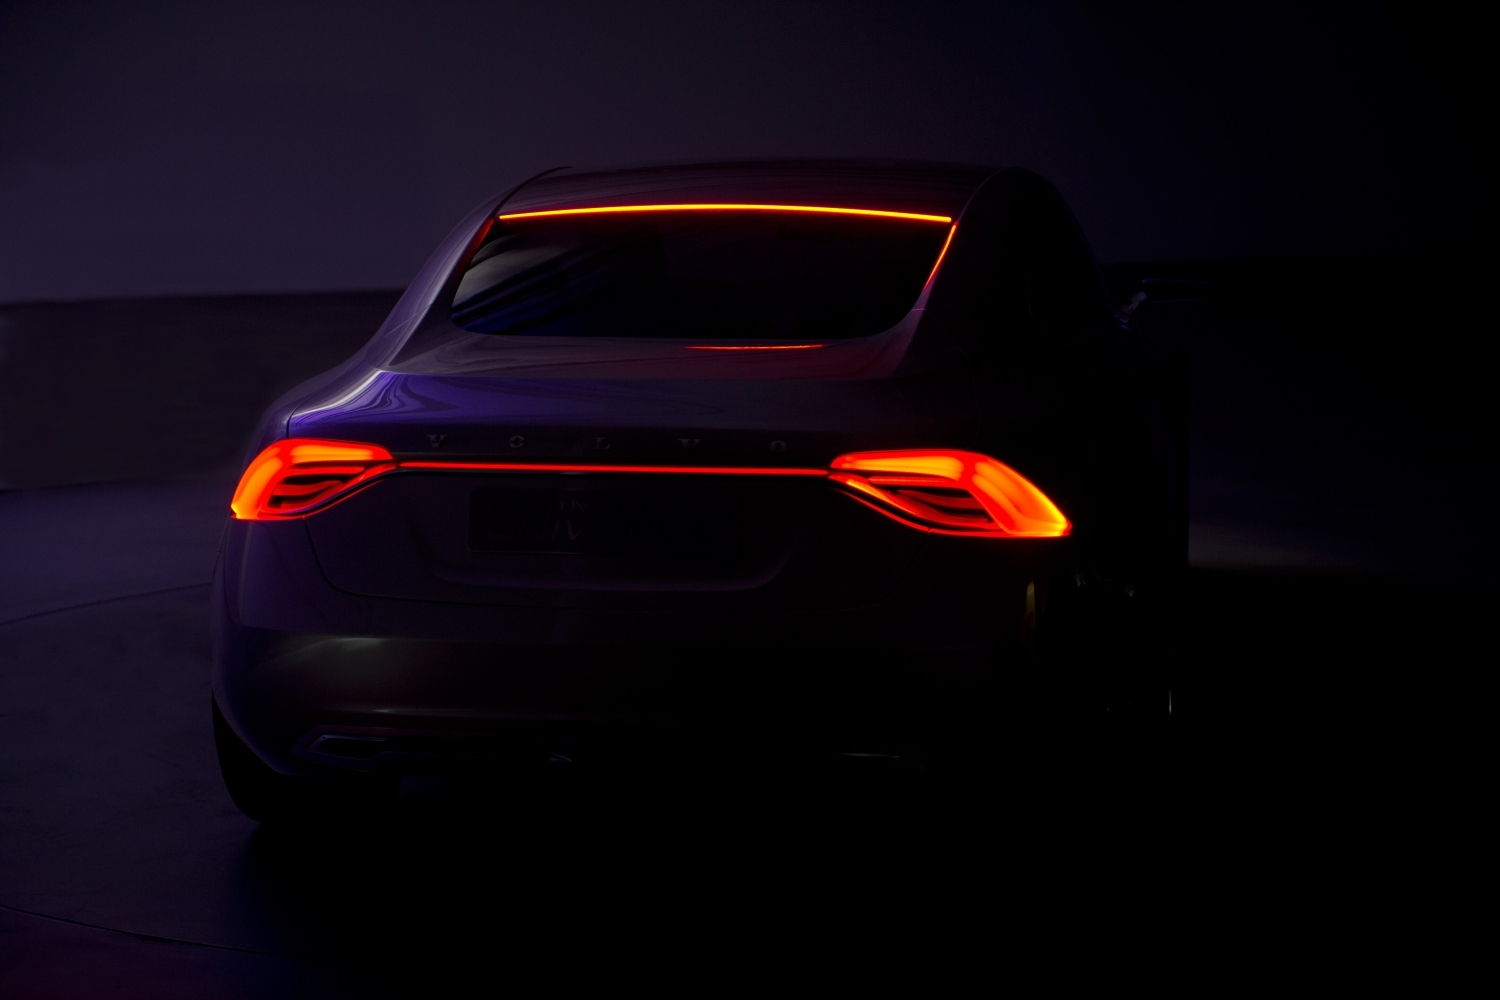 37765_Volvo_Concept_Universe_rear_lights_in_the_dark_2_of_2_images_showing_the